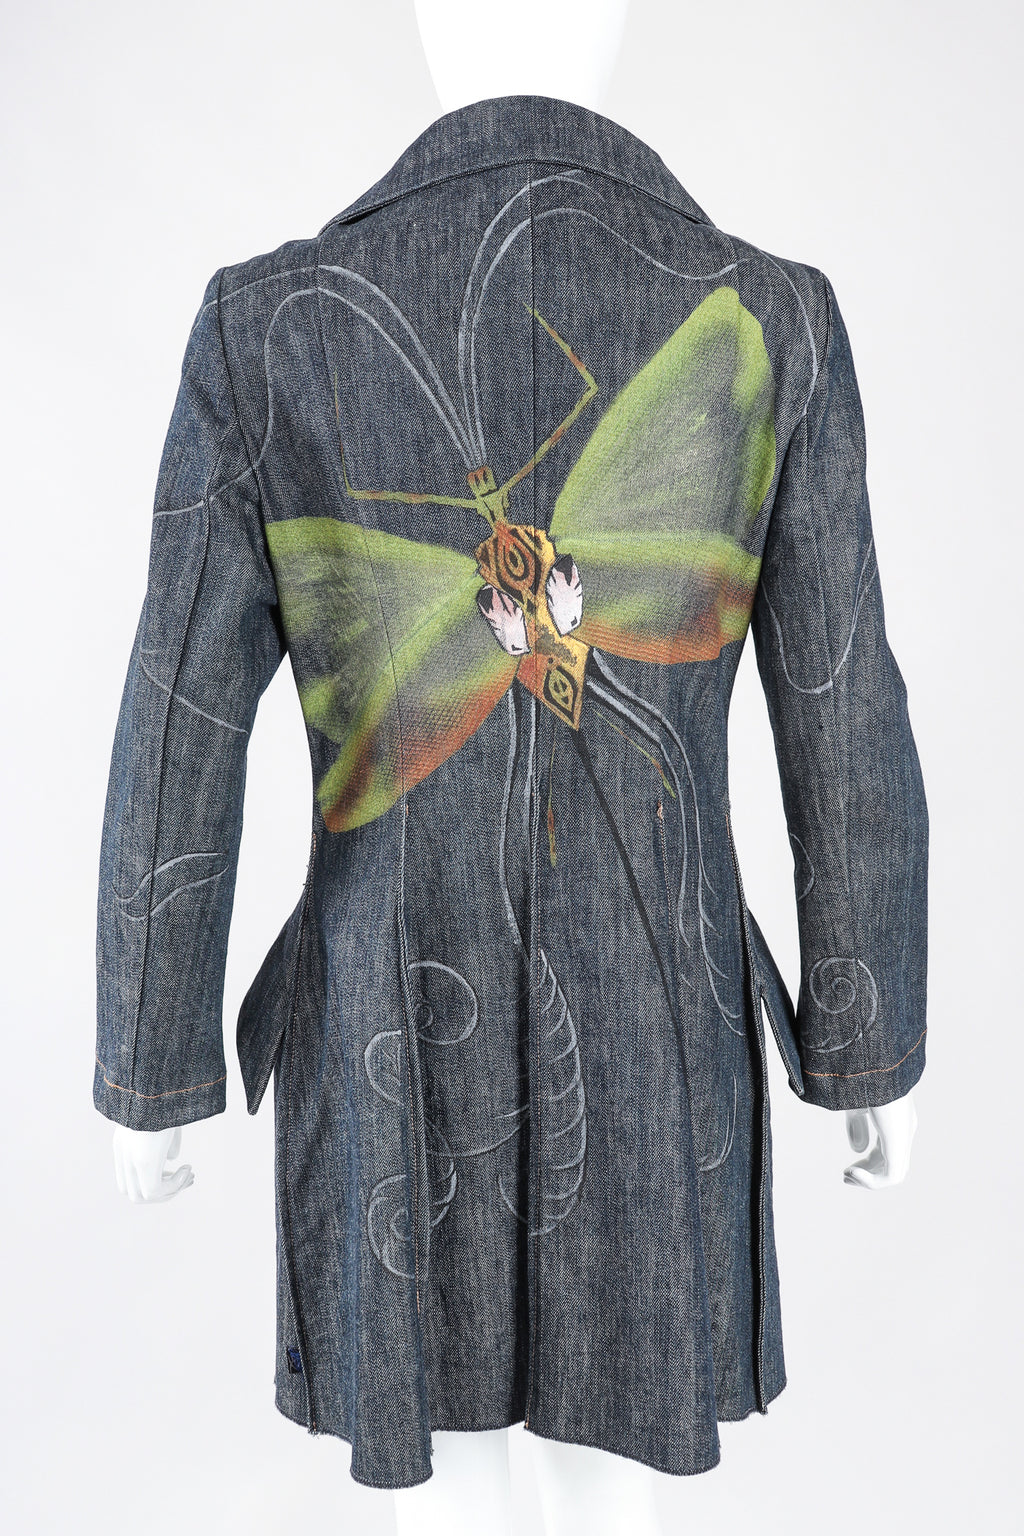 Recess Los Angeles Designer Consignment Vintage Christian Lacroix Hand Painted Moth Insect Denim Princess Coat